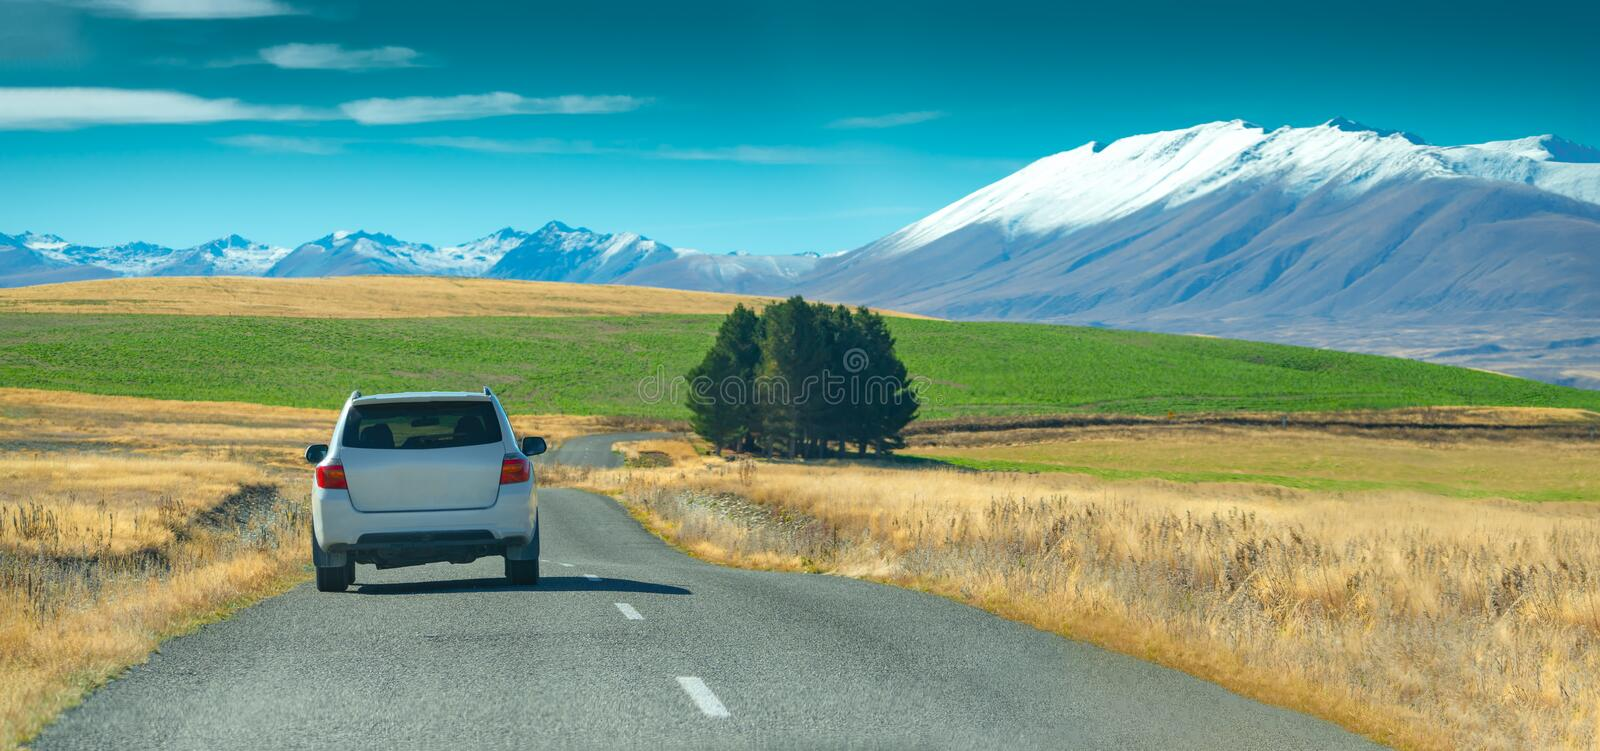 A silver crossover car driving fast on the countryside asphalt road against blue sky with white clouds. A long straight road stock image